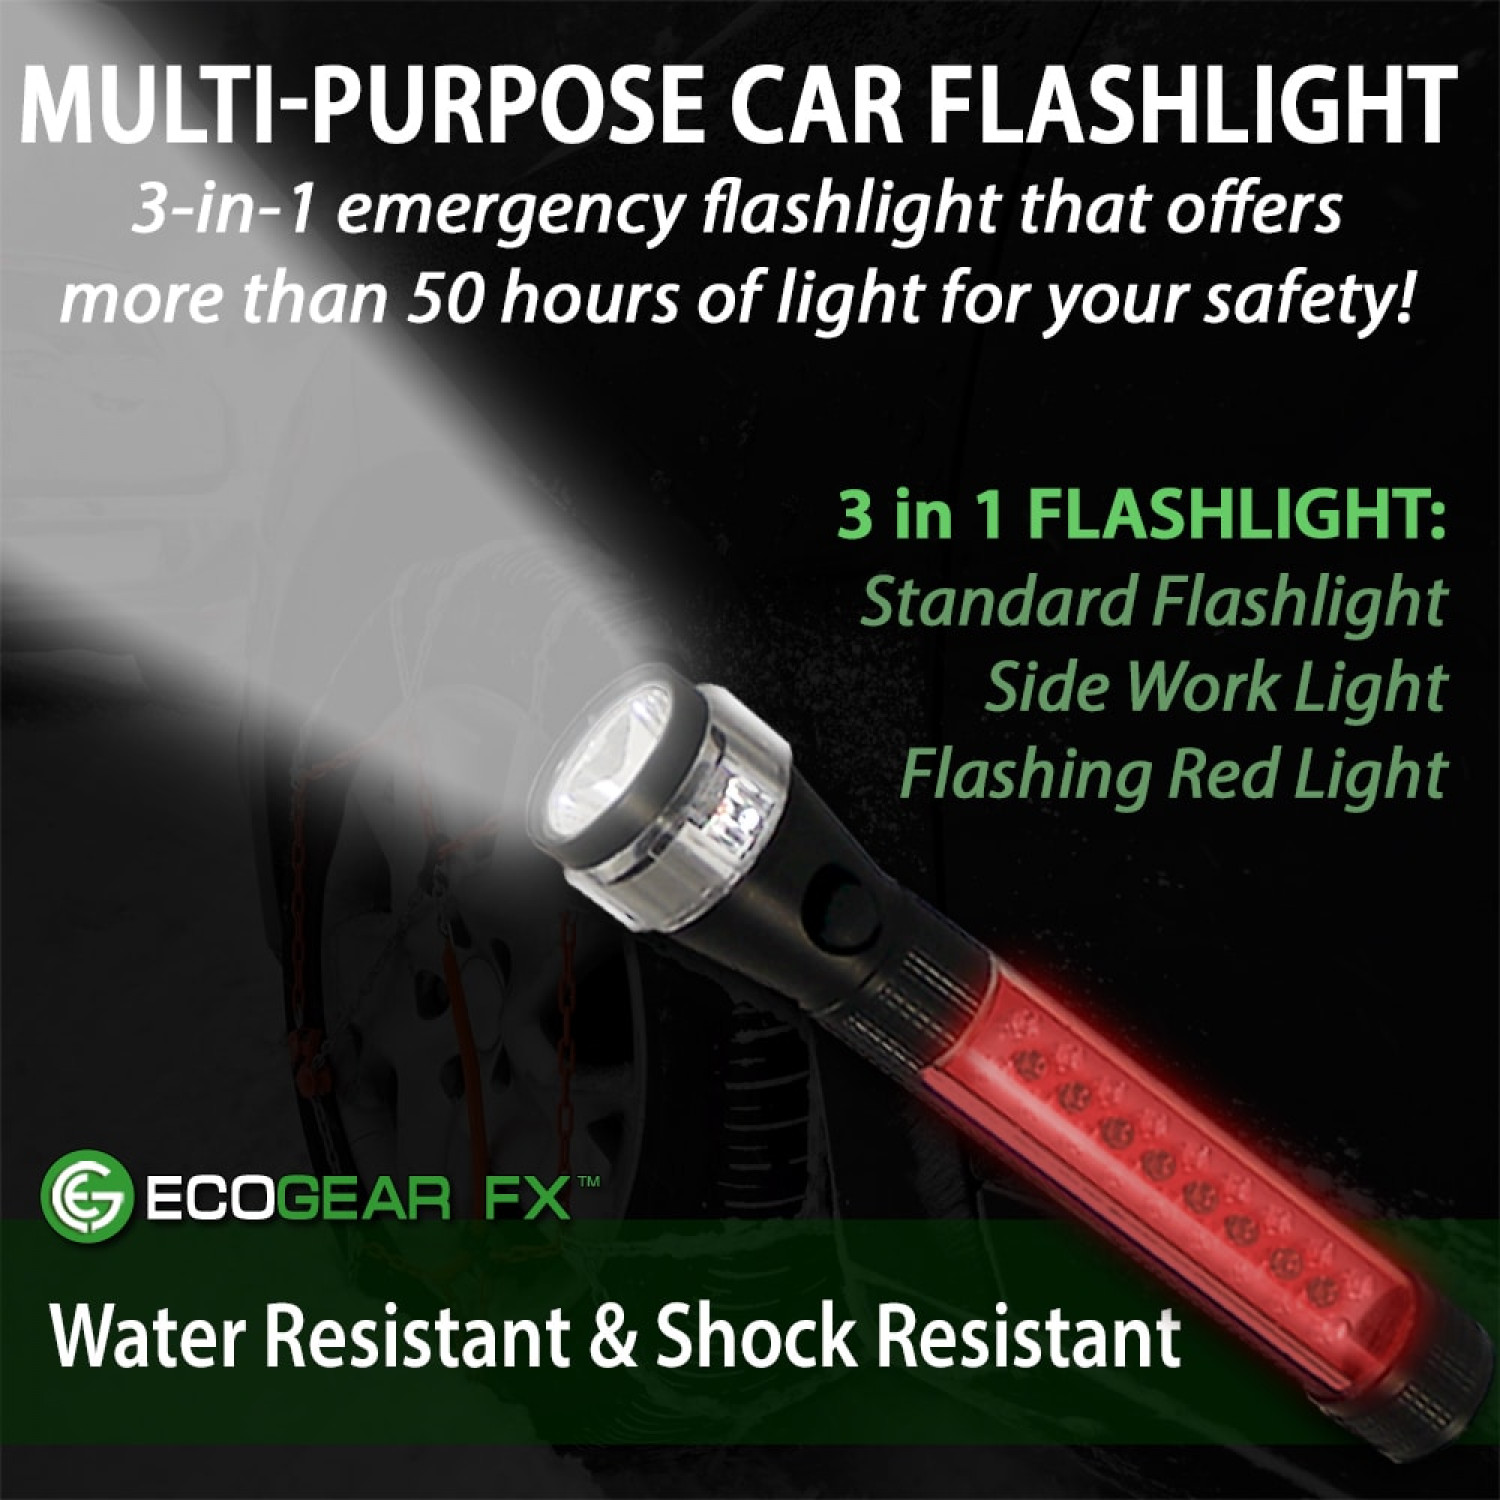 https://www.ecogearfx.com/product/multi-function-led-worklight-flashlight/ Infographic